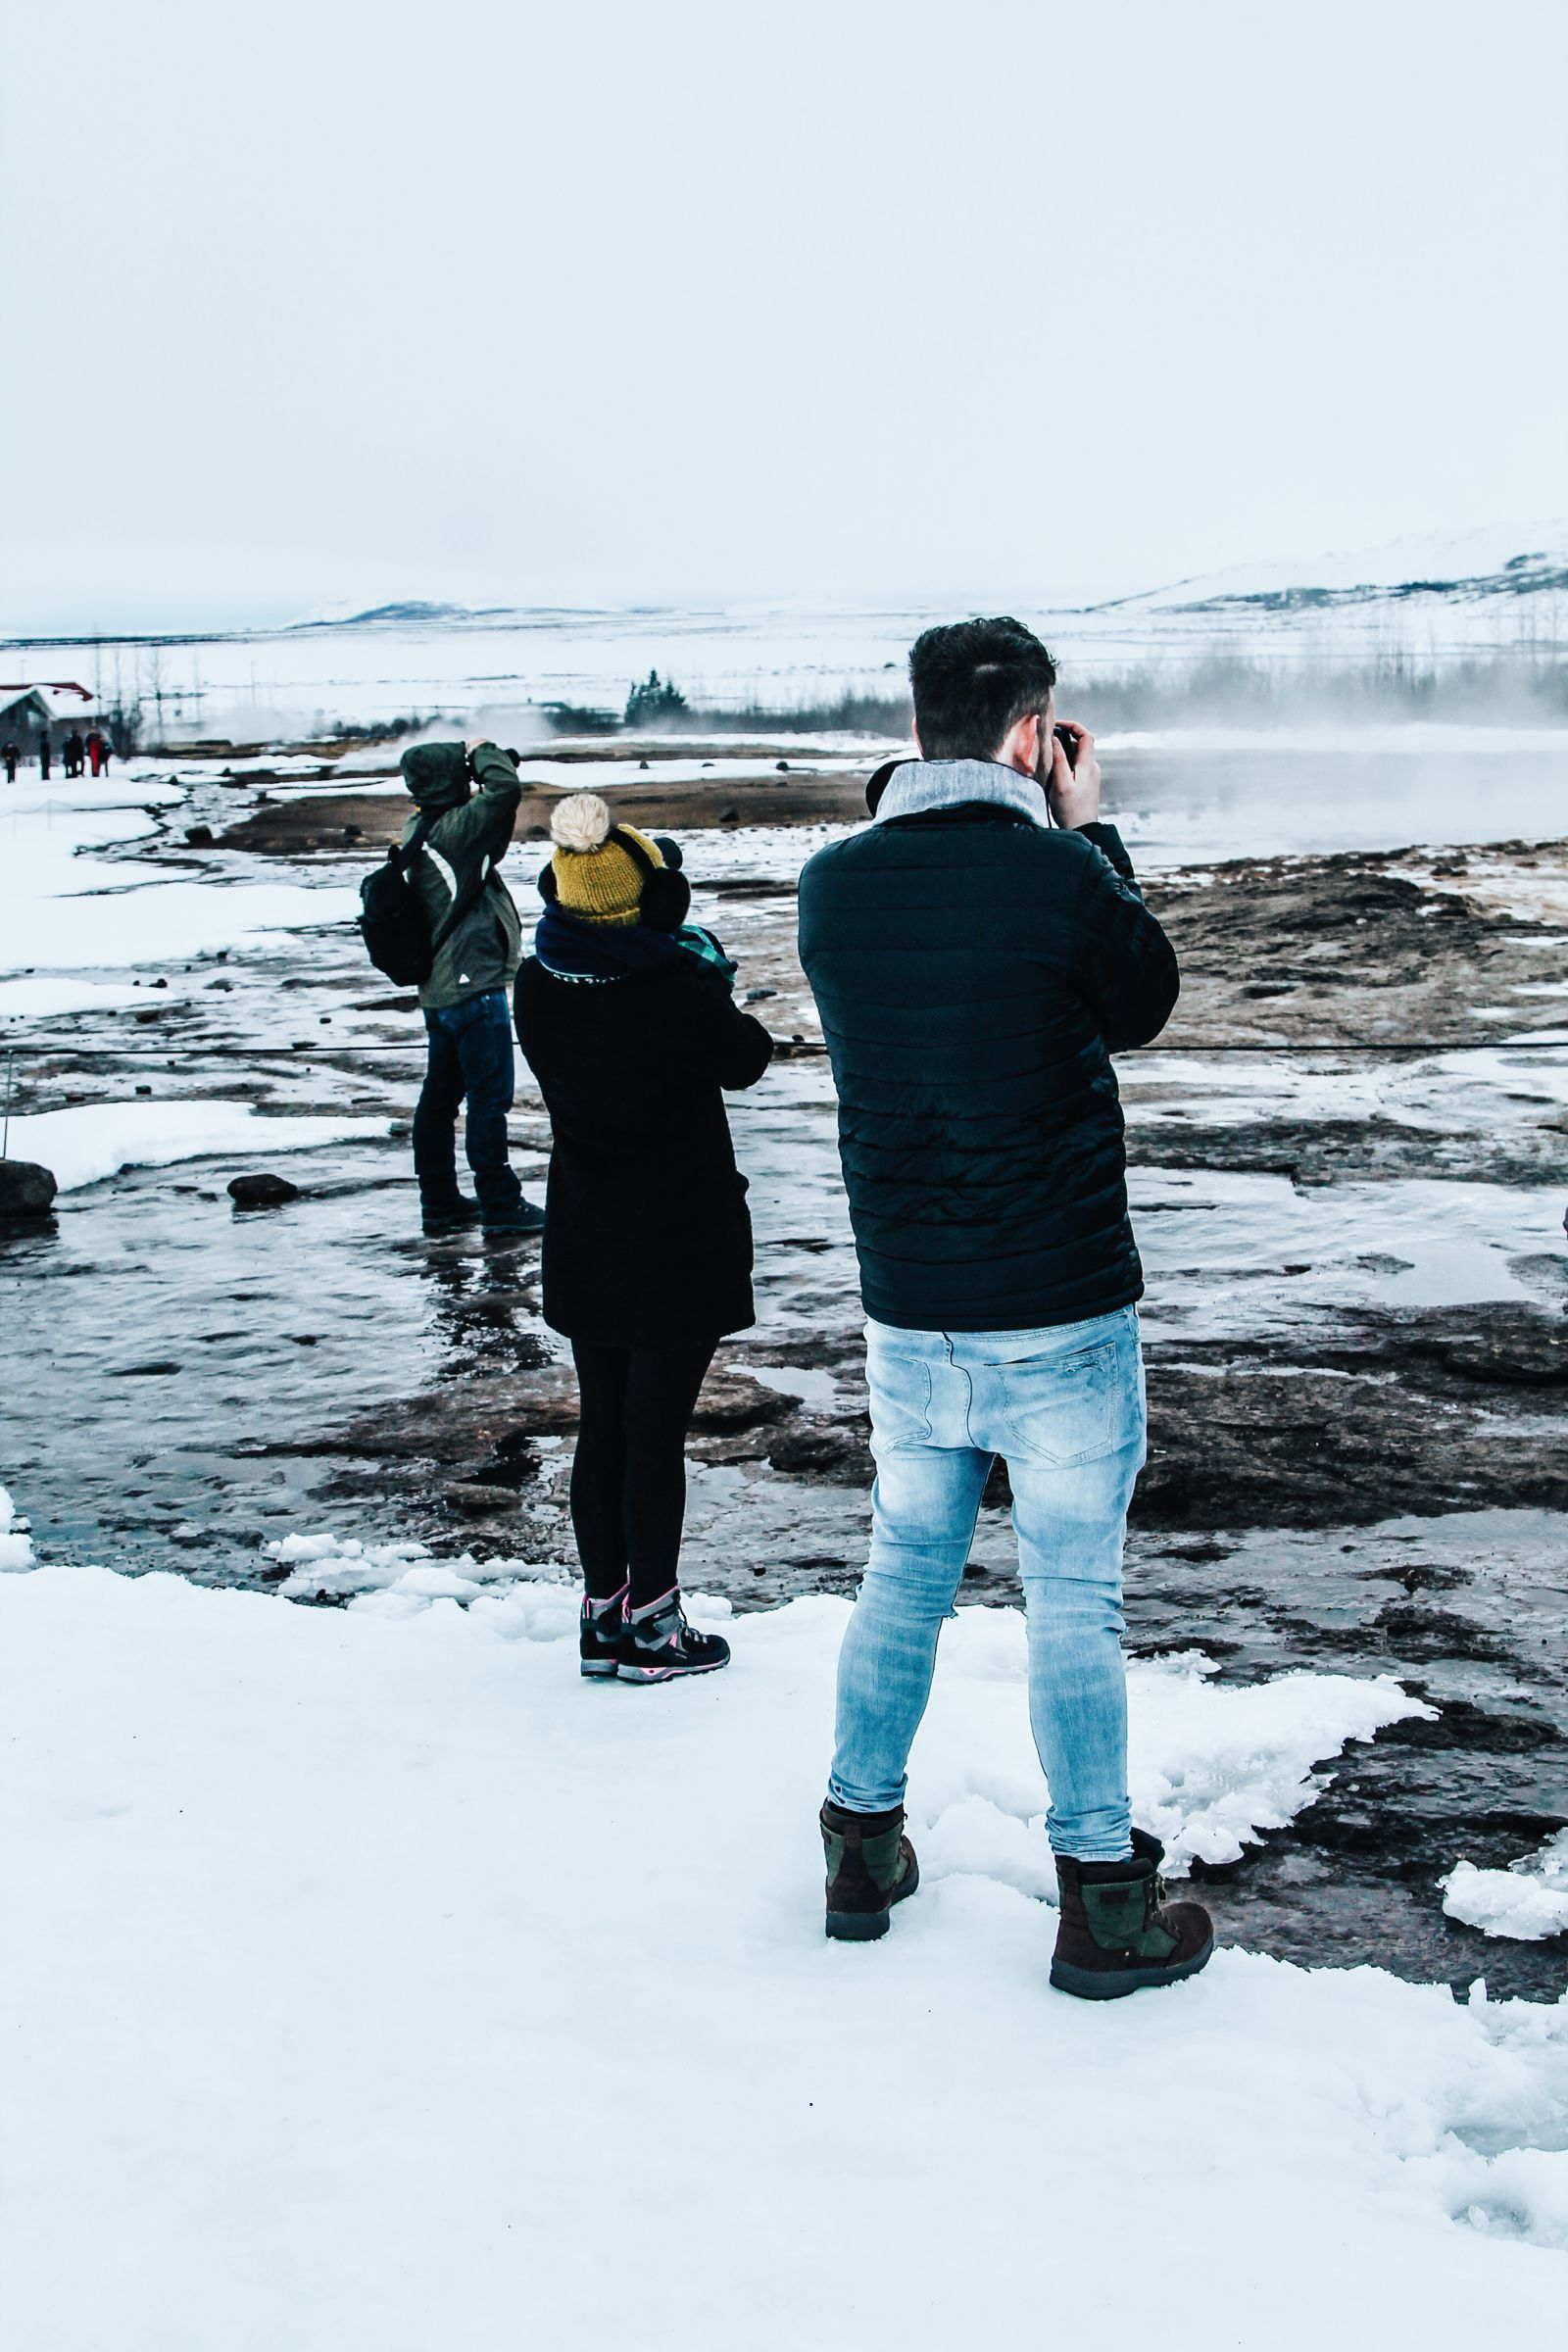 The 1st Day in The Land Of Fire and Ice - Iceland! Lava Baking, Geo-Thermal Pools & The Golden Circle (Part 2) (18)